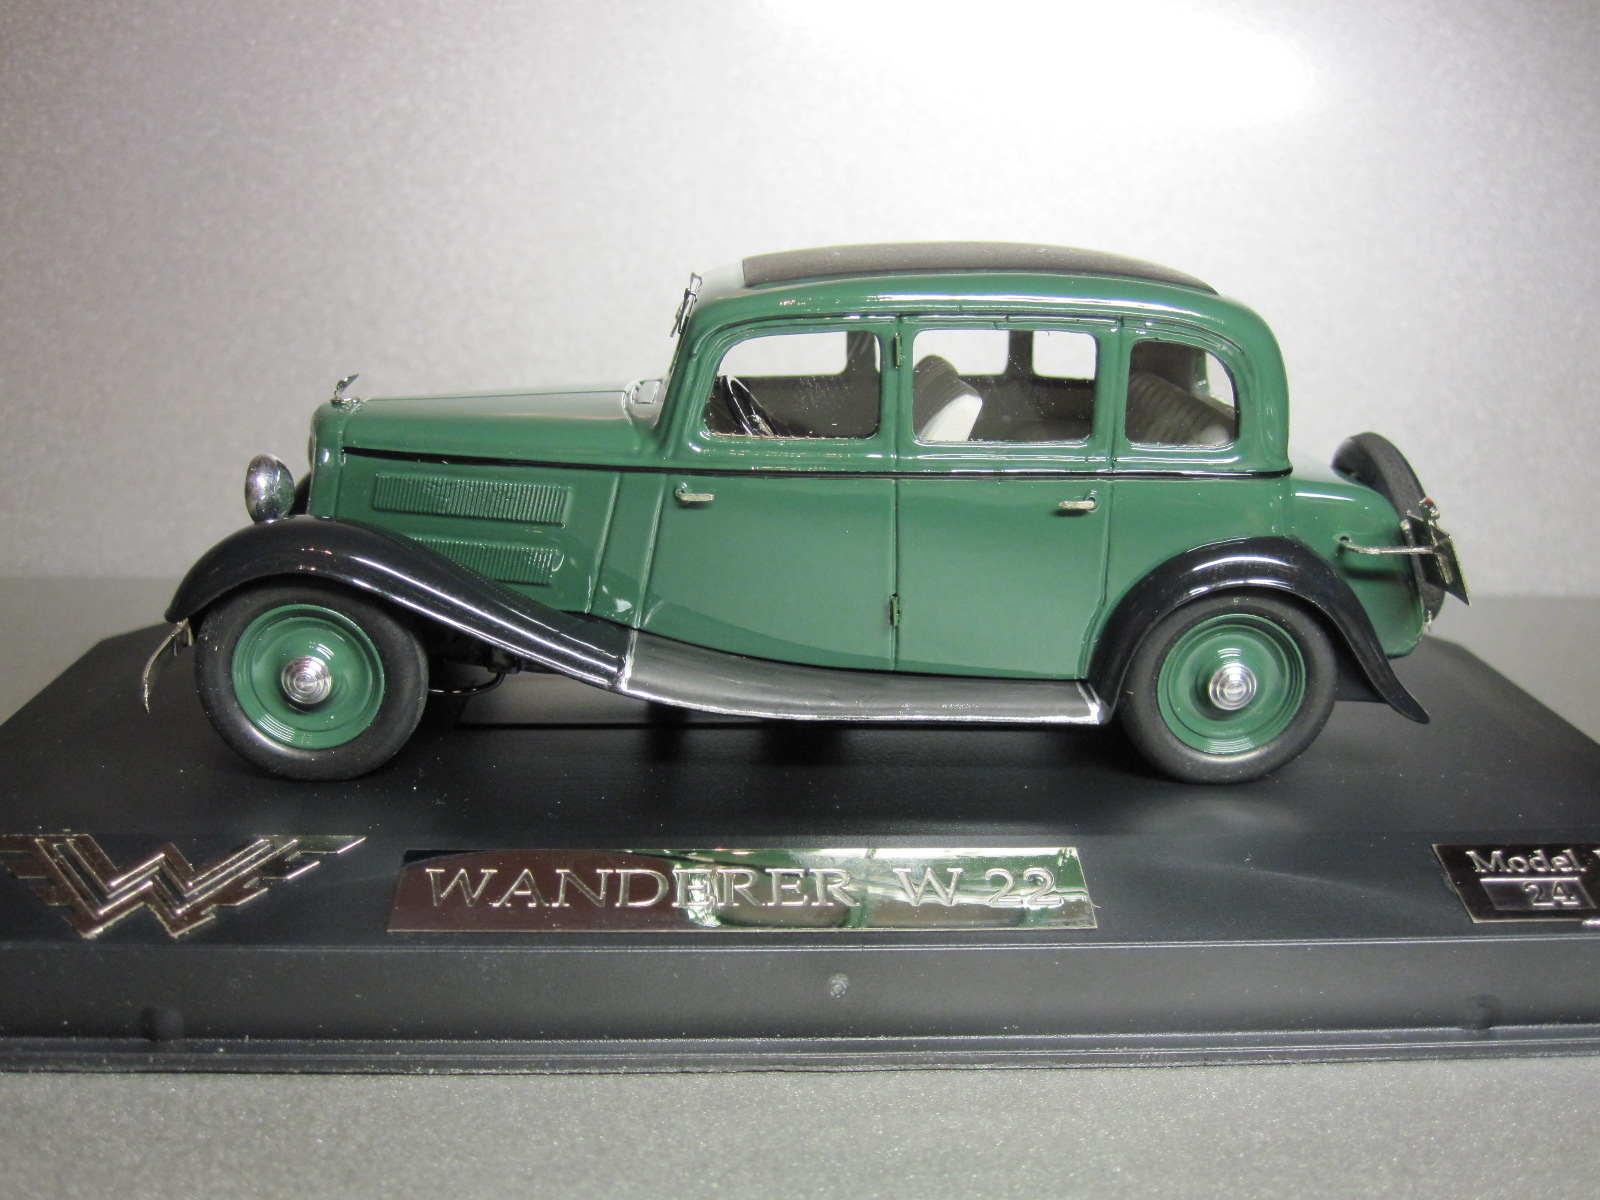 ZZ Model: 1933 Wanderer W22 Limousine Green in 1:43 scale . Picture provided by Aleksandr (Desdemona), 2010-06-08 14:49:48